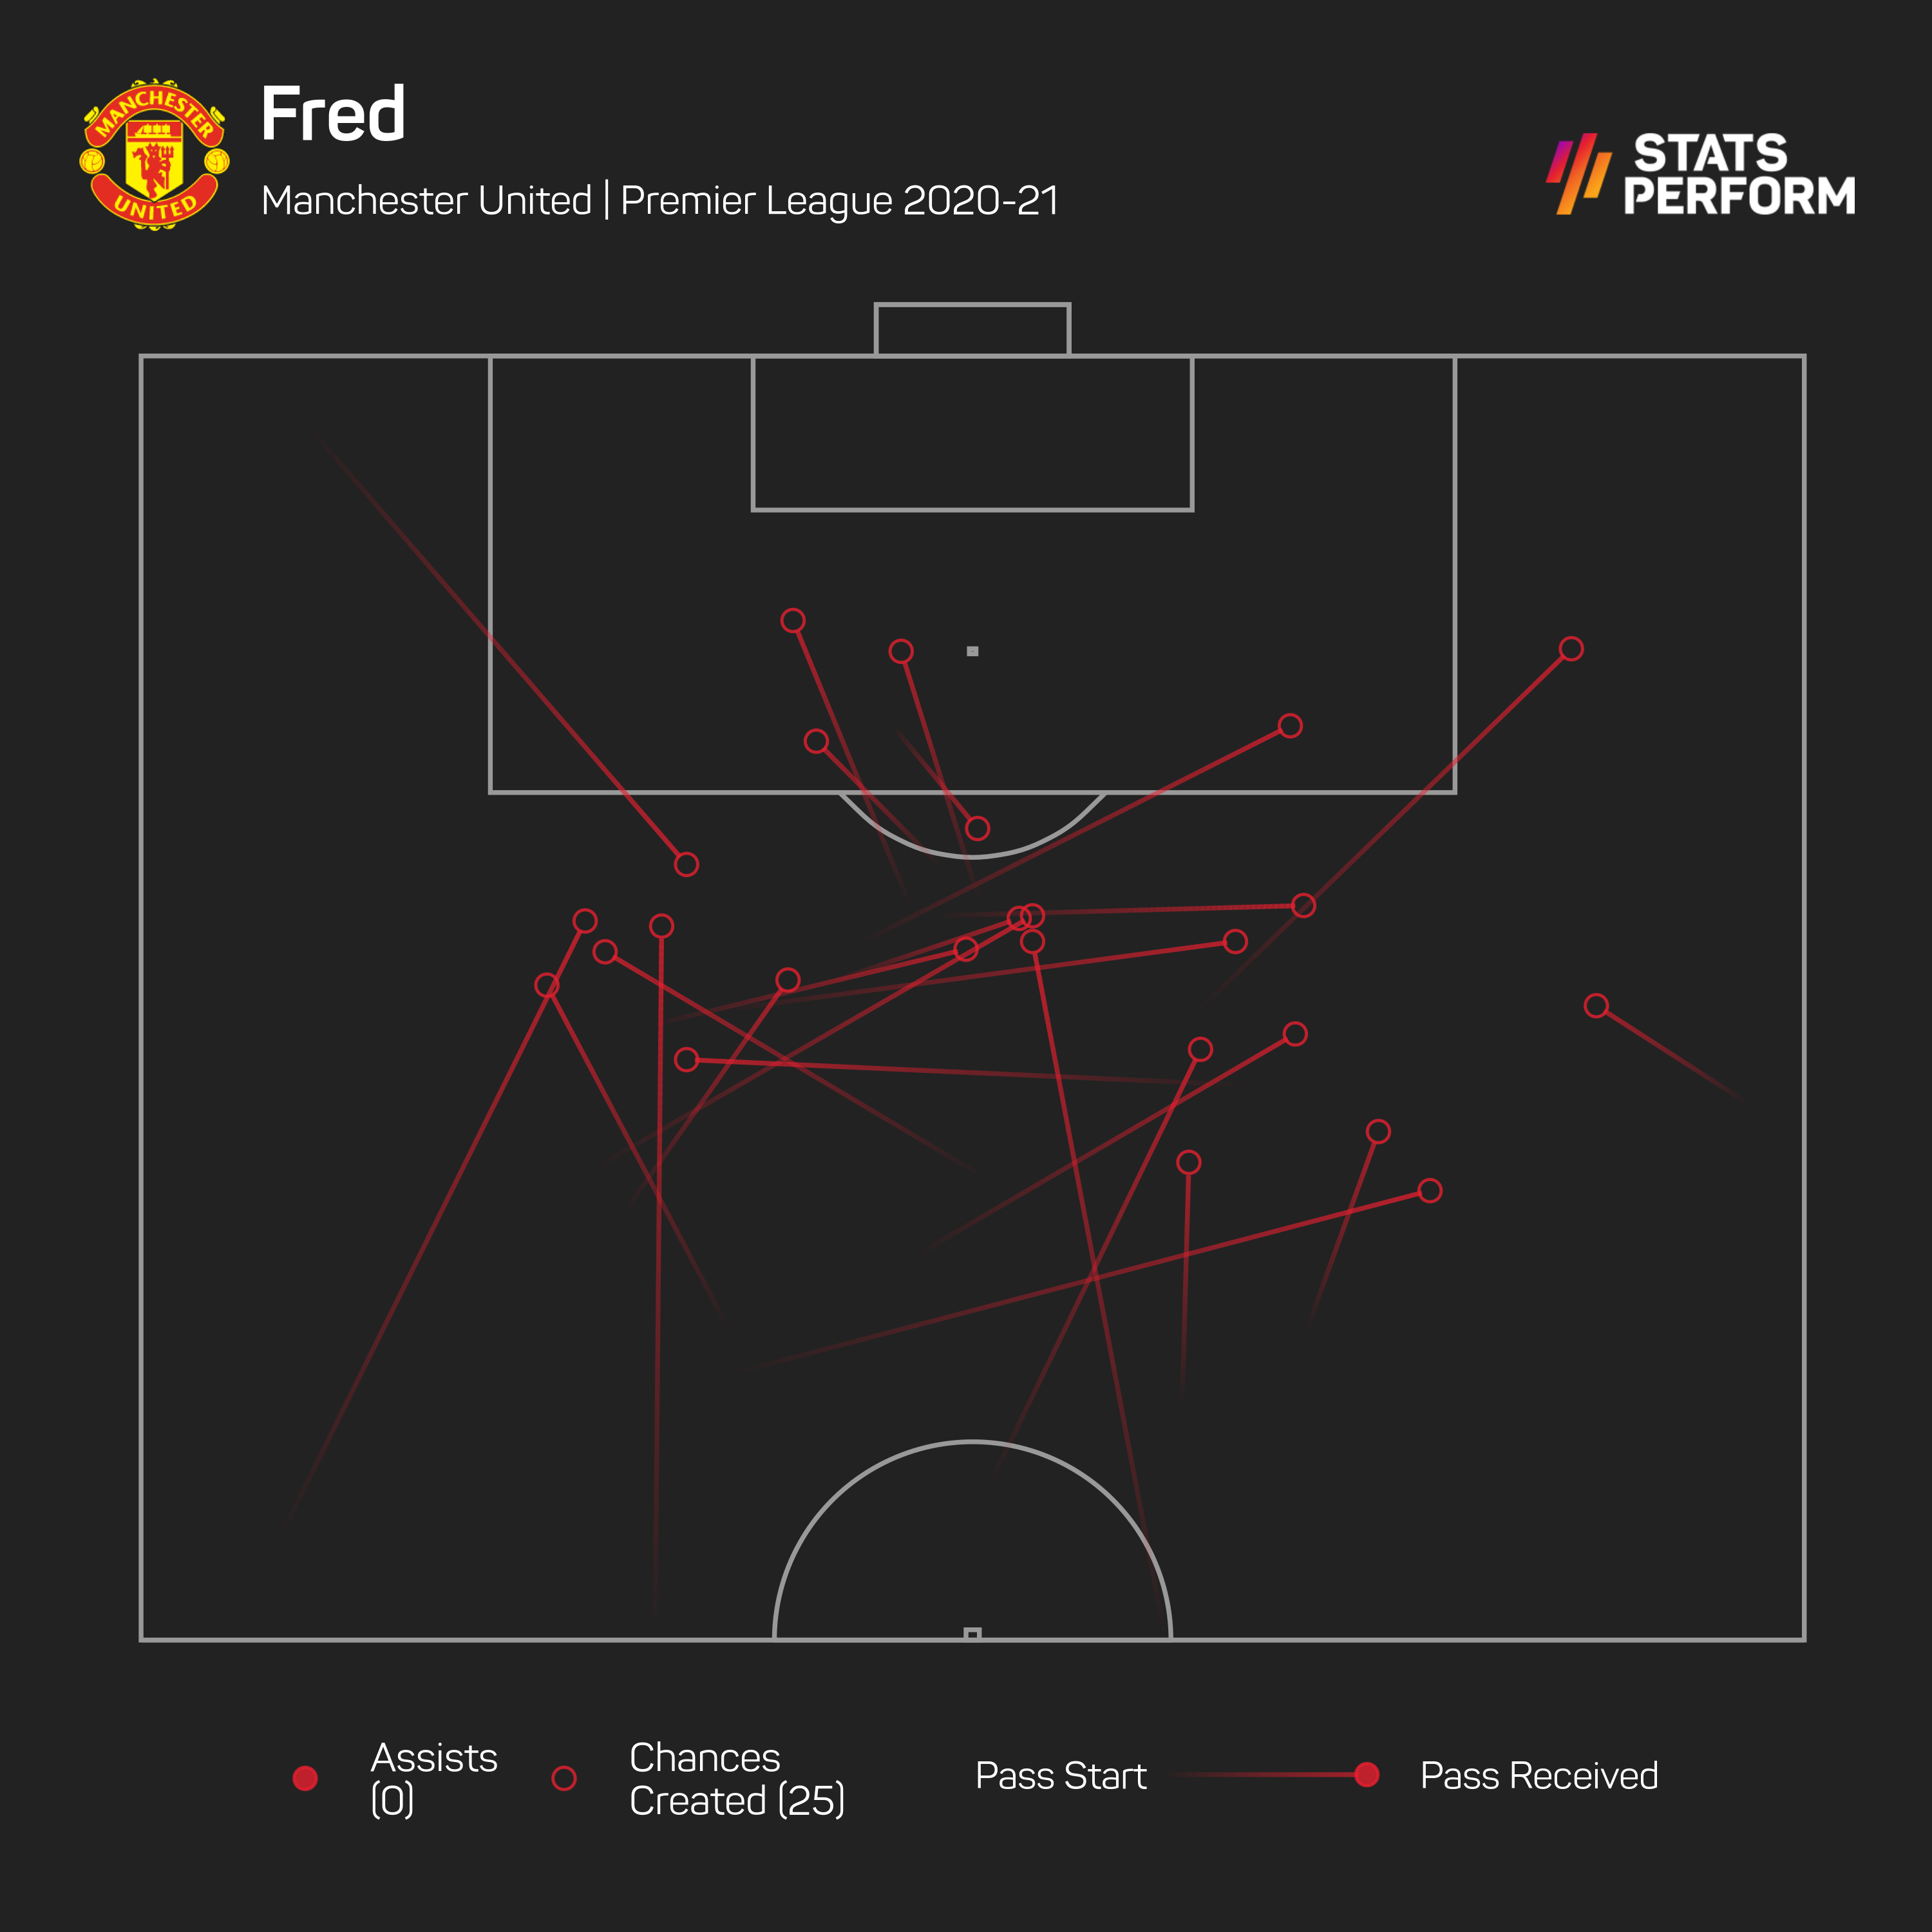 Fred doesn't offer great creativity in his current role